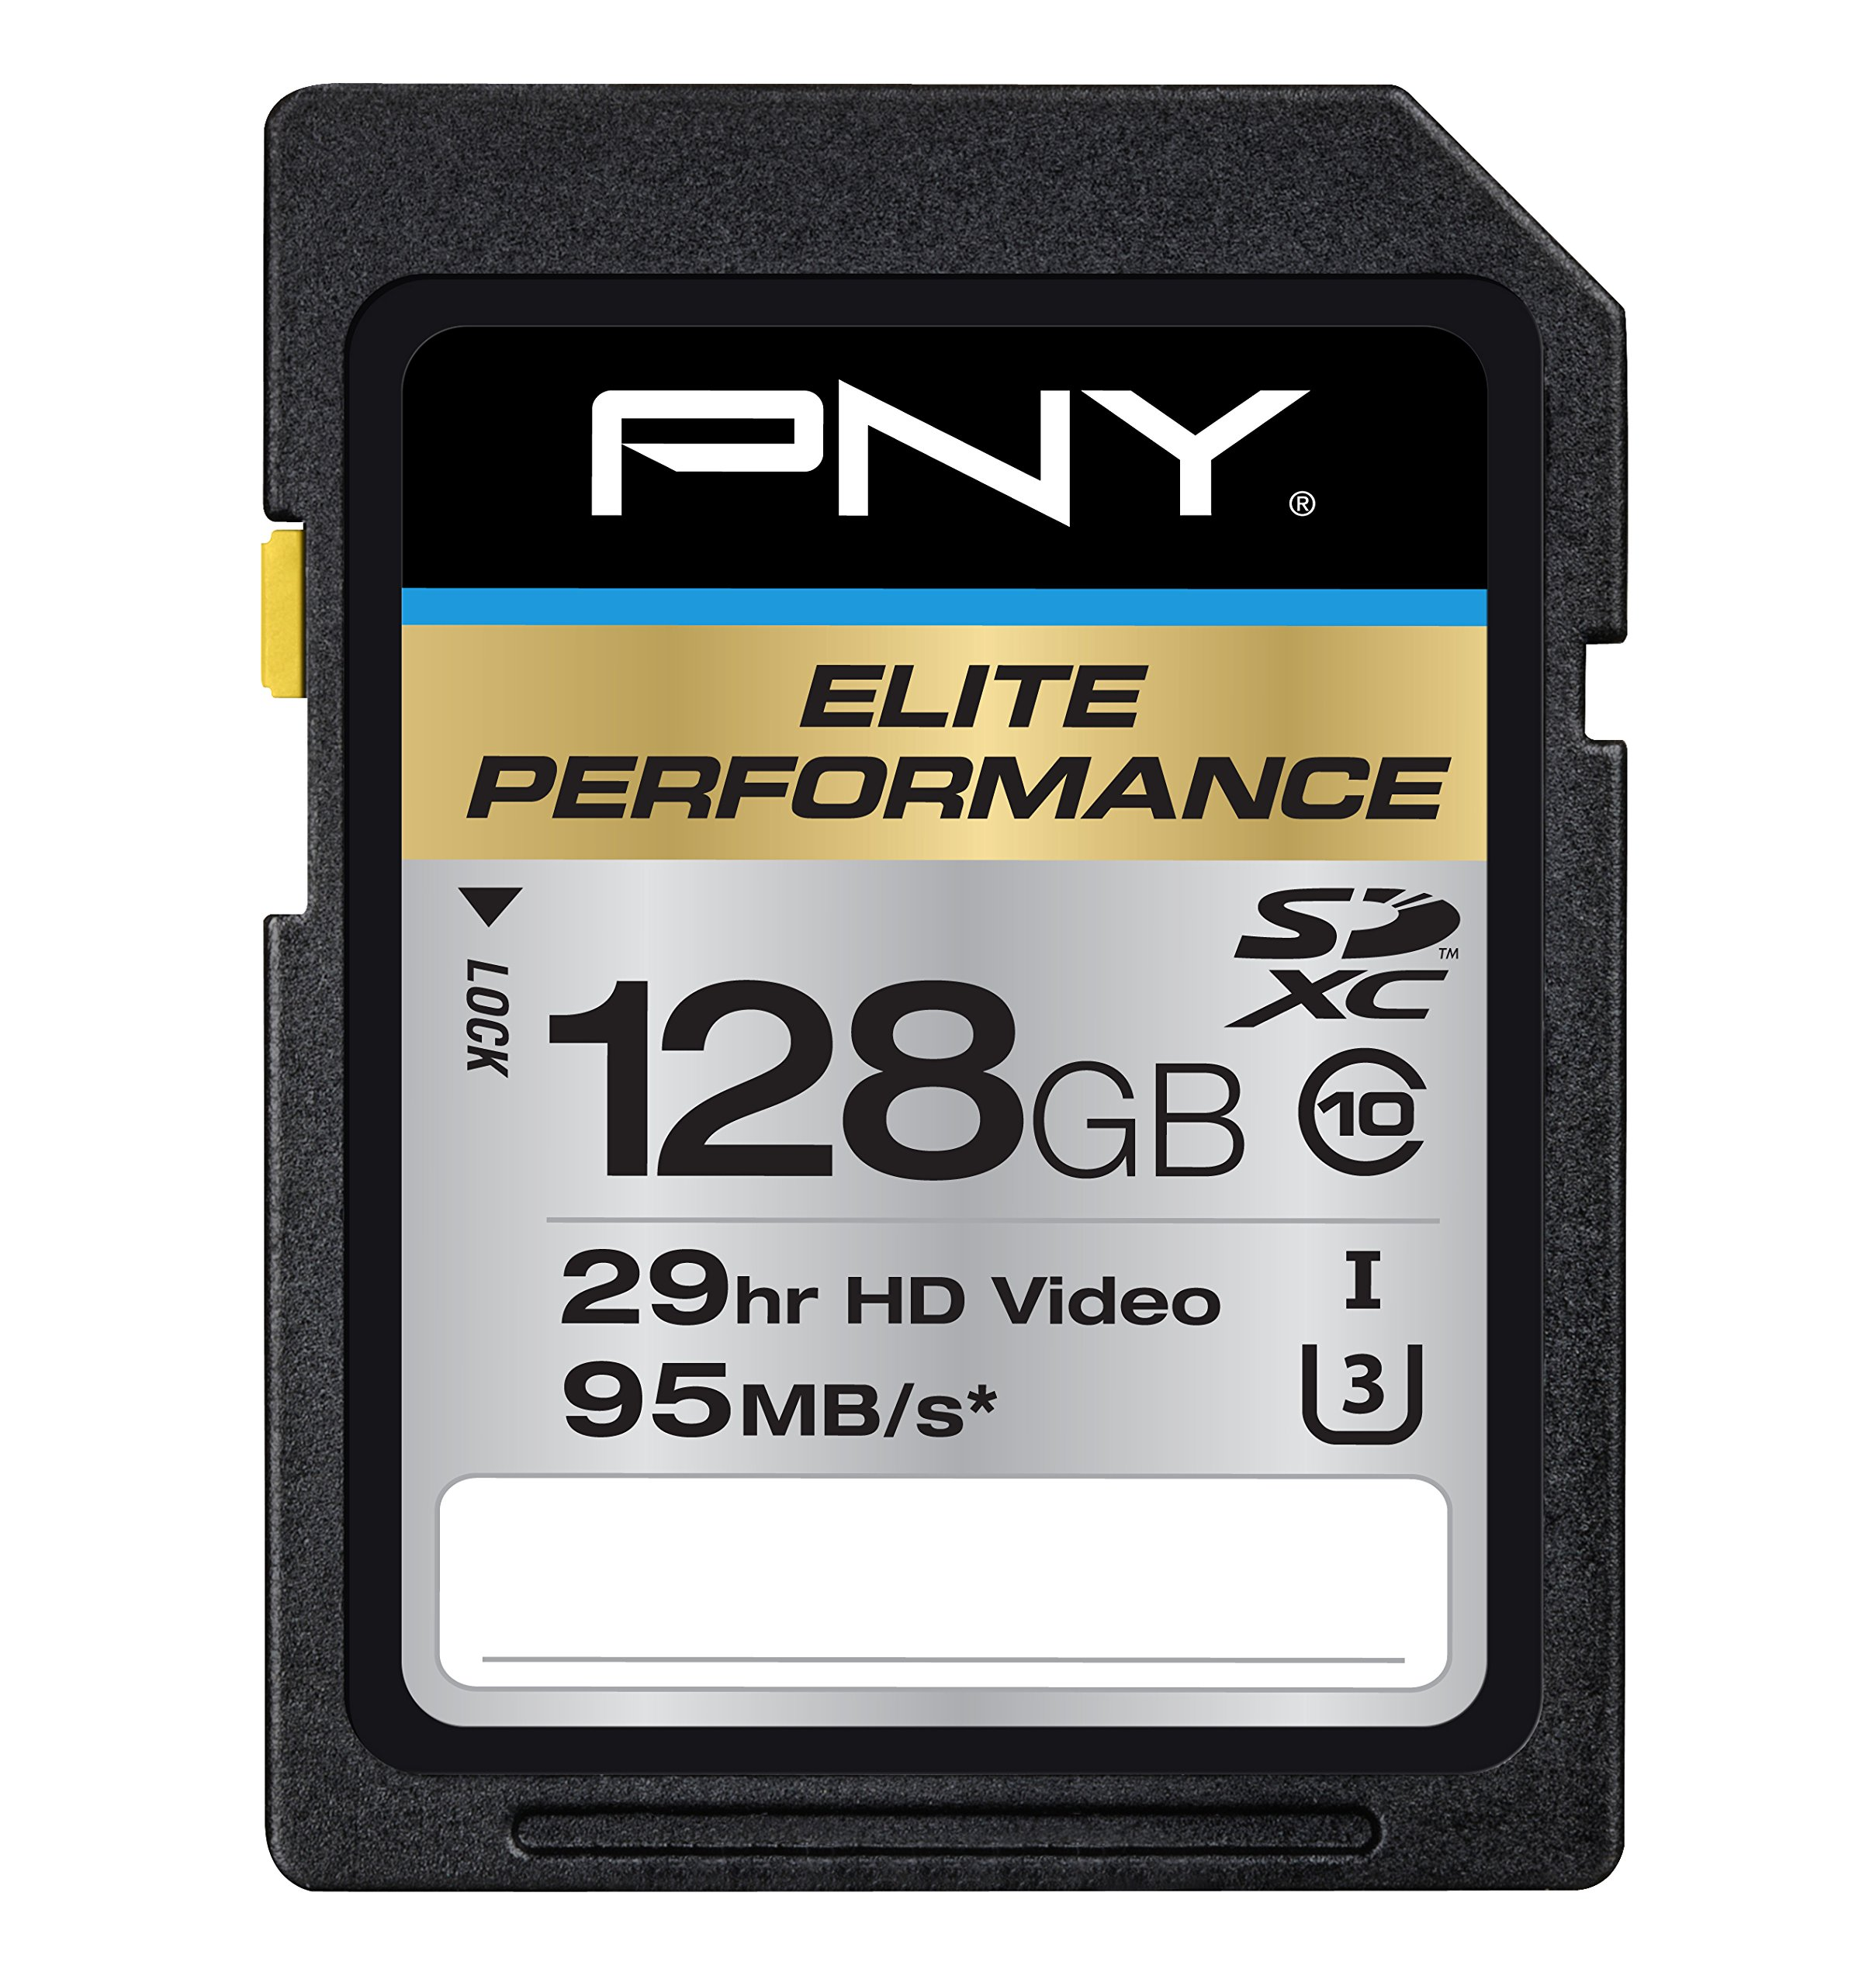 PNY P-SDX128U395-GE Elite Performance 128 GB High Speed SDXC Class 10 UHS-I, U3 Up to 95 MB/Sec Flash Card by PNY